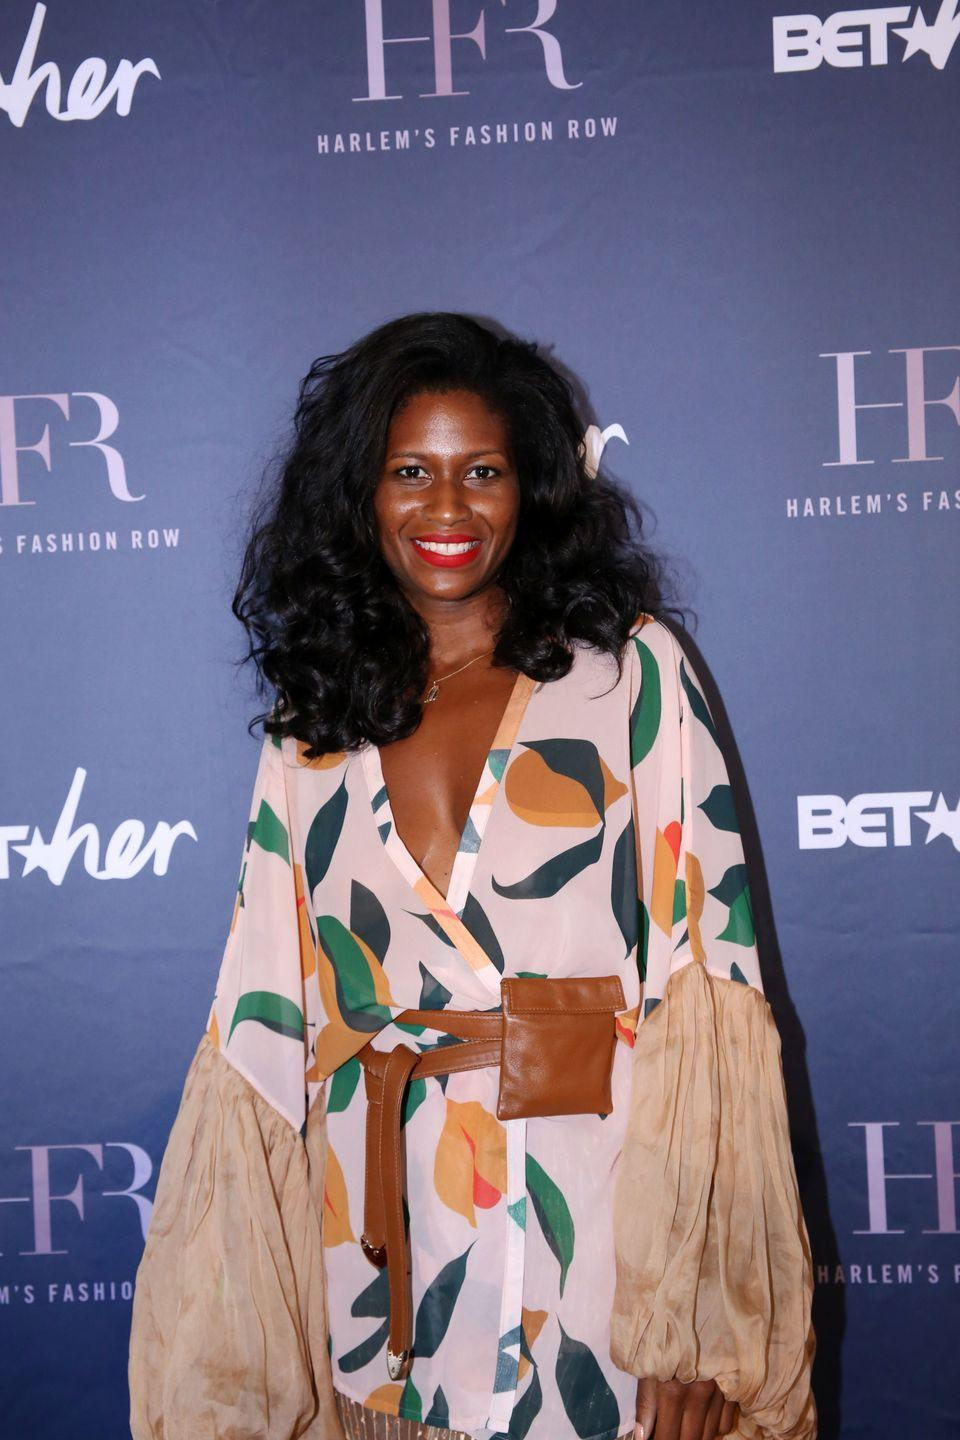 <p><strong>Brand</strong>: Fe Noel</p><p>Beautiful robes, swimsuits, and ready-to-wear from designer Fe Noel will literally make your life a happier place. You'll fall in love with the stunning, vacation-worthy prints, like the one on the robe she's wearing here. </p>